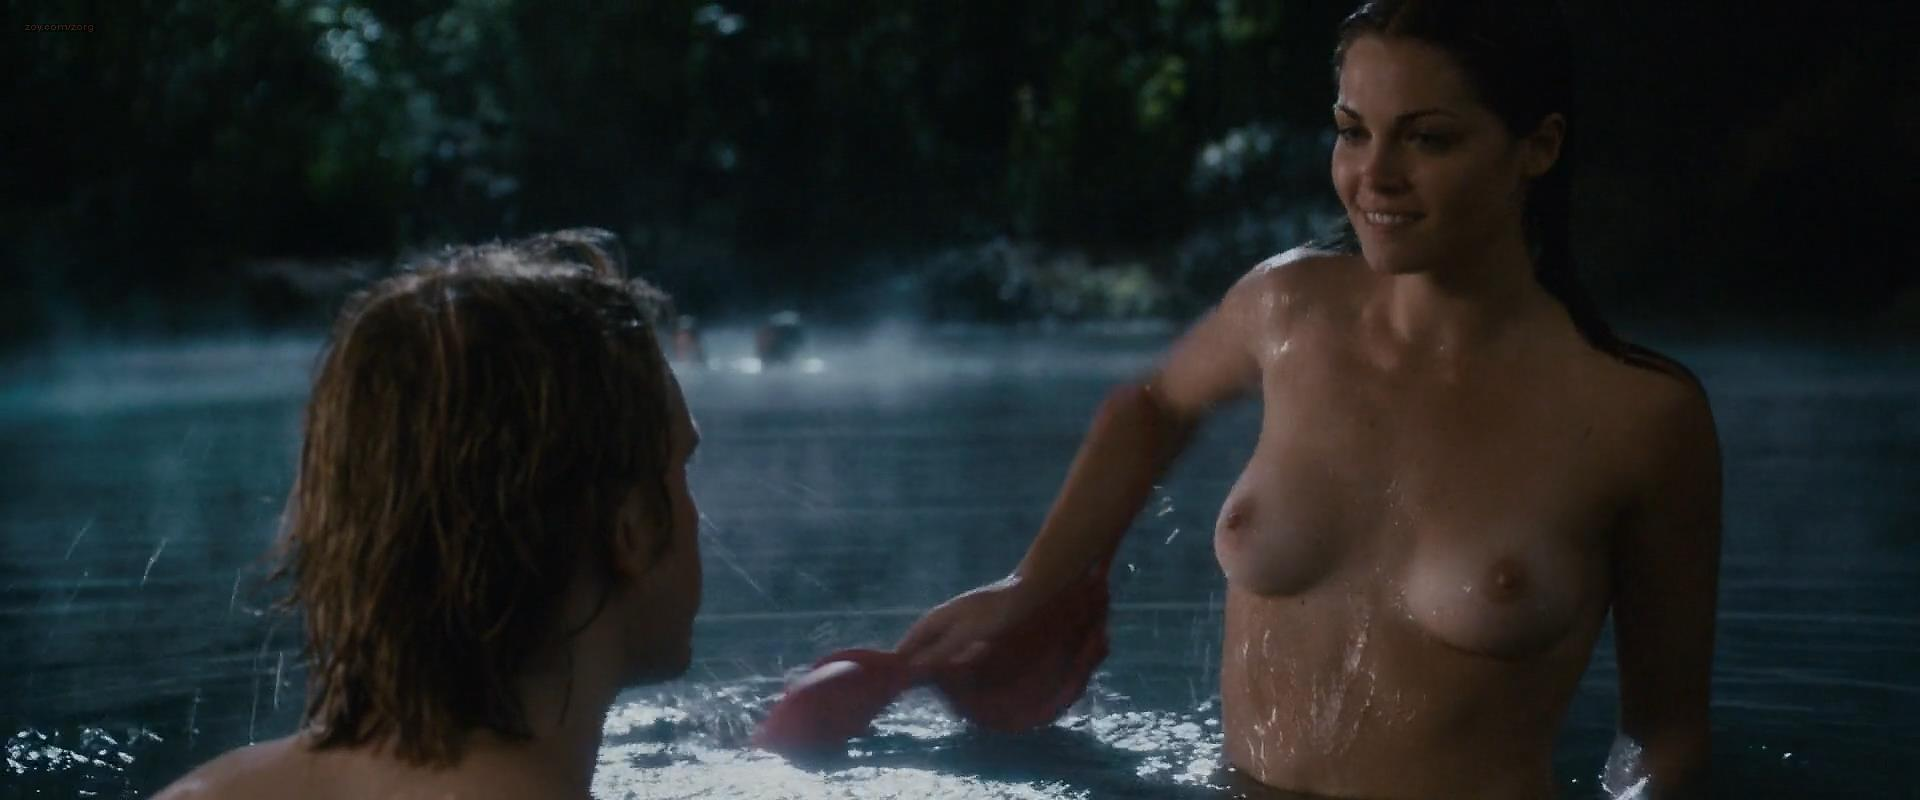 Kate French nude topless and skinny dipping - Fired Up (2009) hd1080p